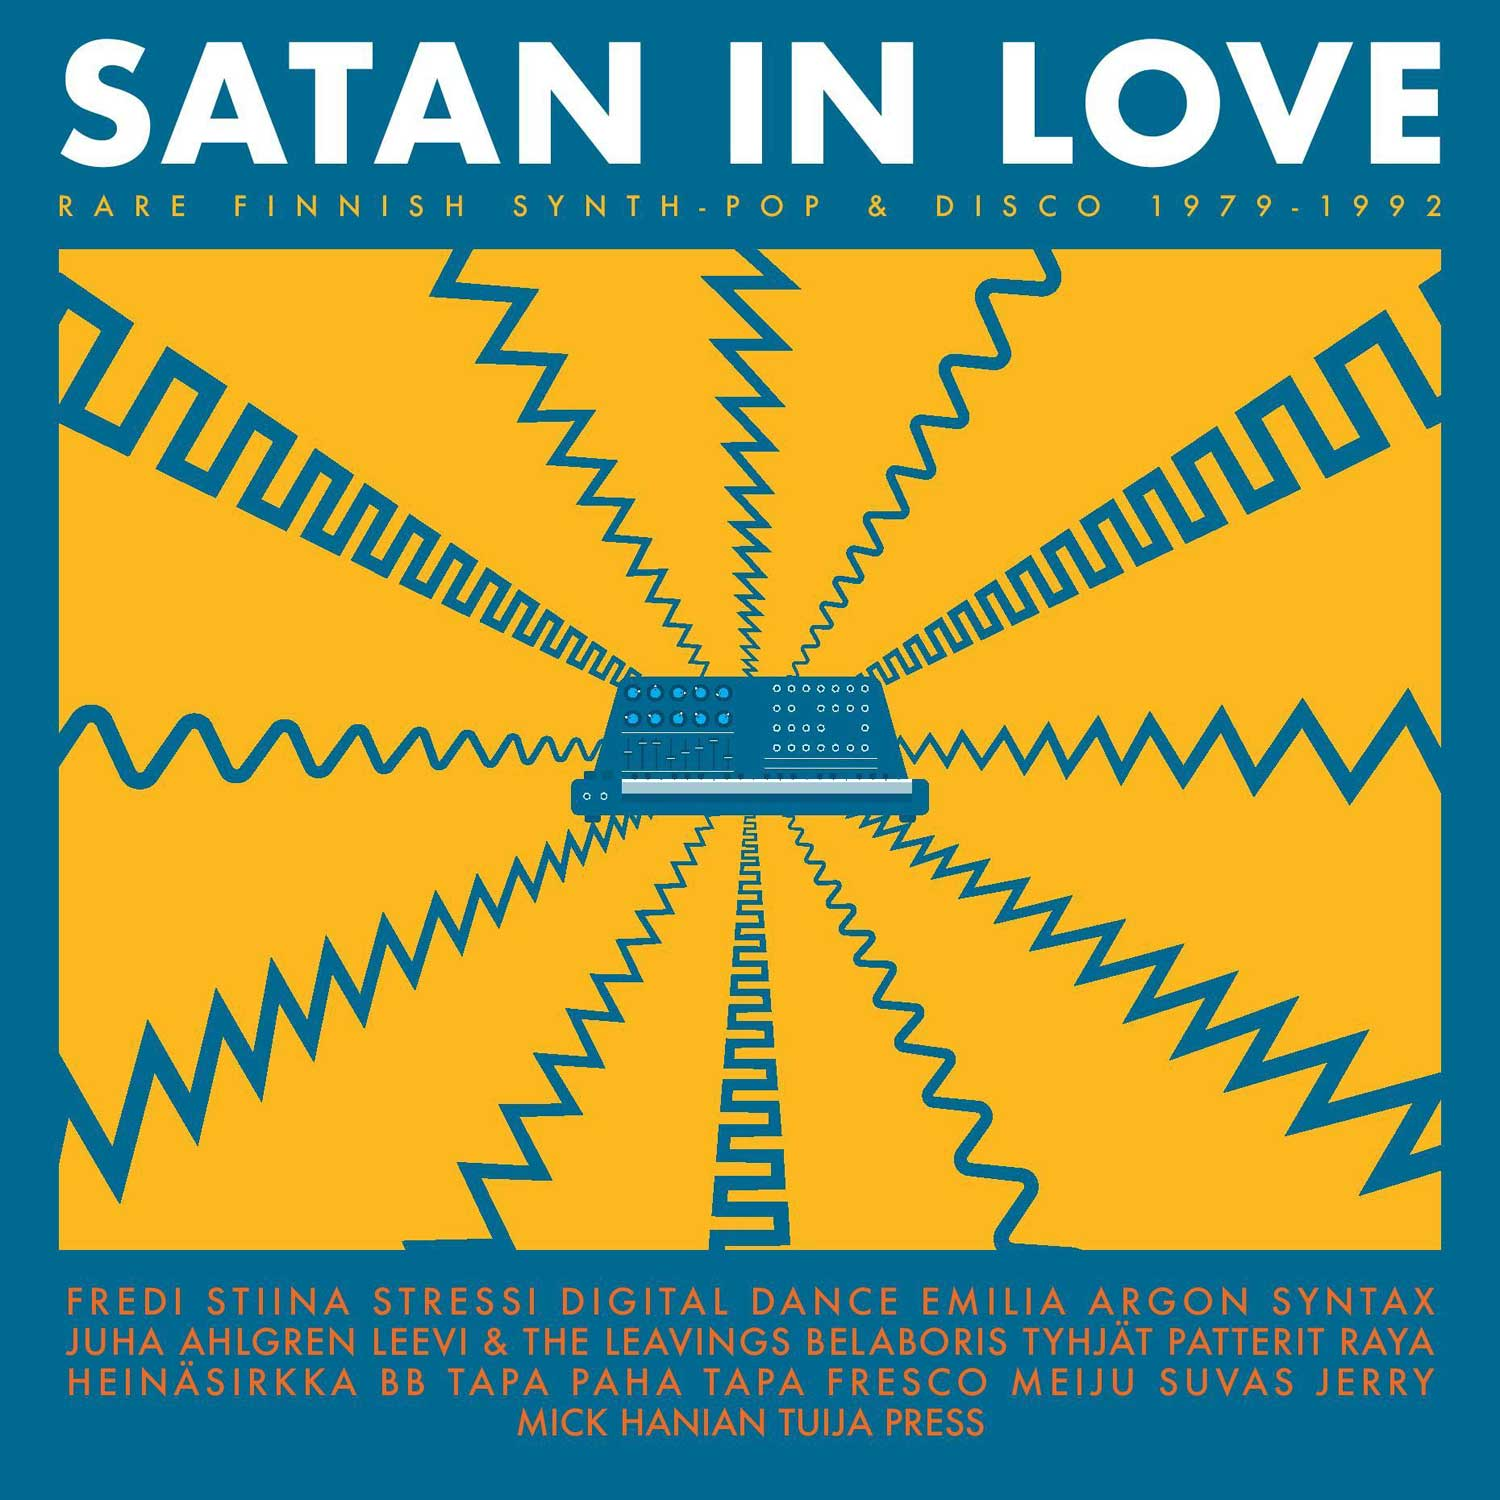 Satan in Love ‐ Rare Finnish Synth‐Pop and Disco 1978‐1992